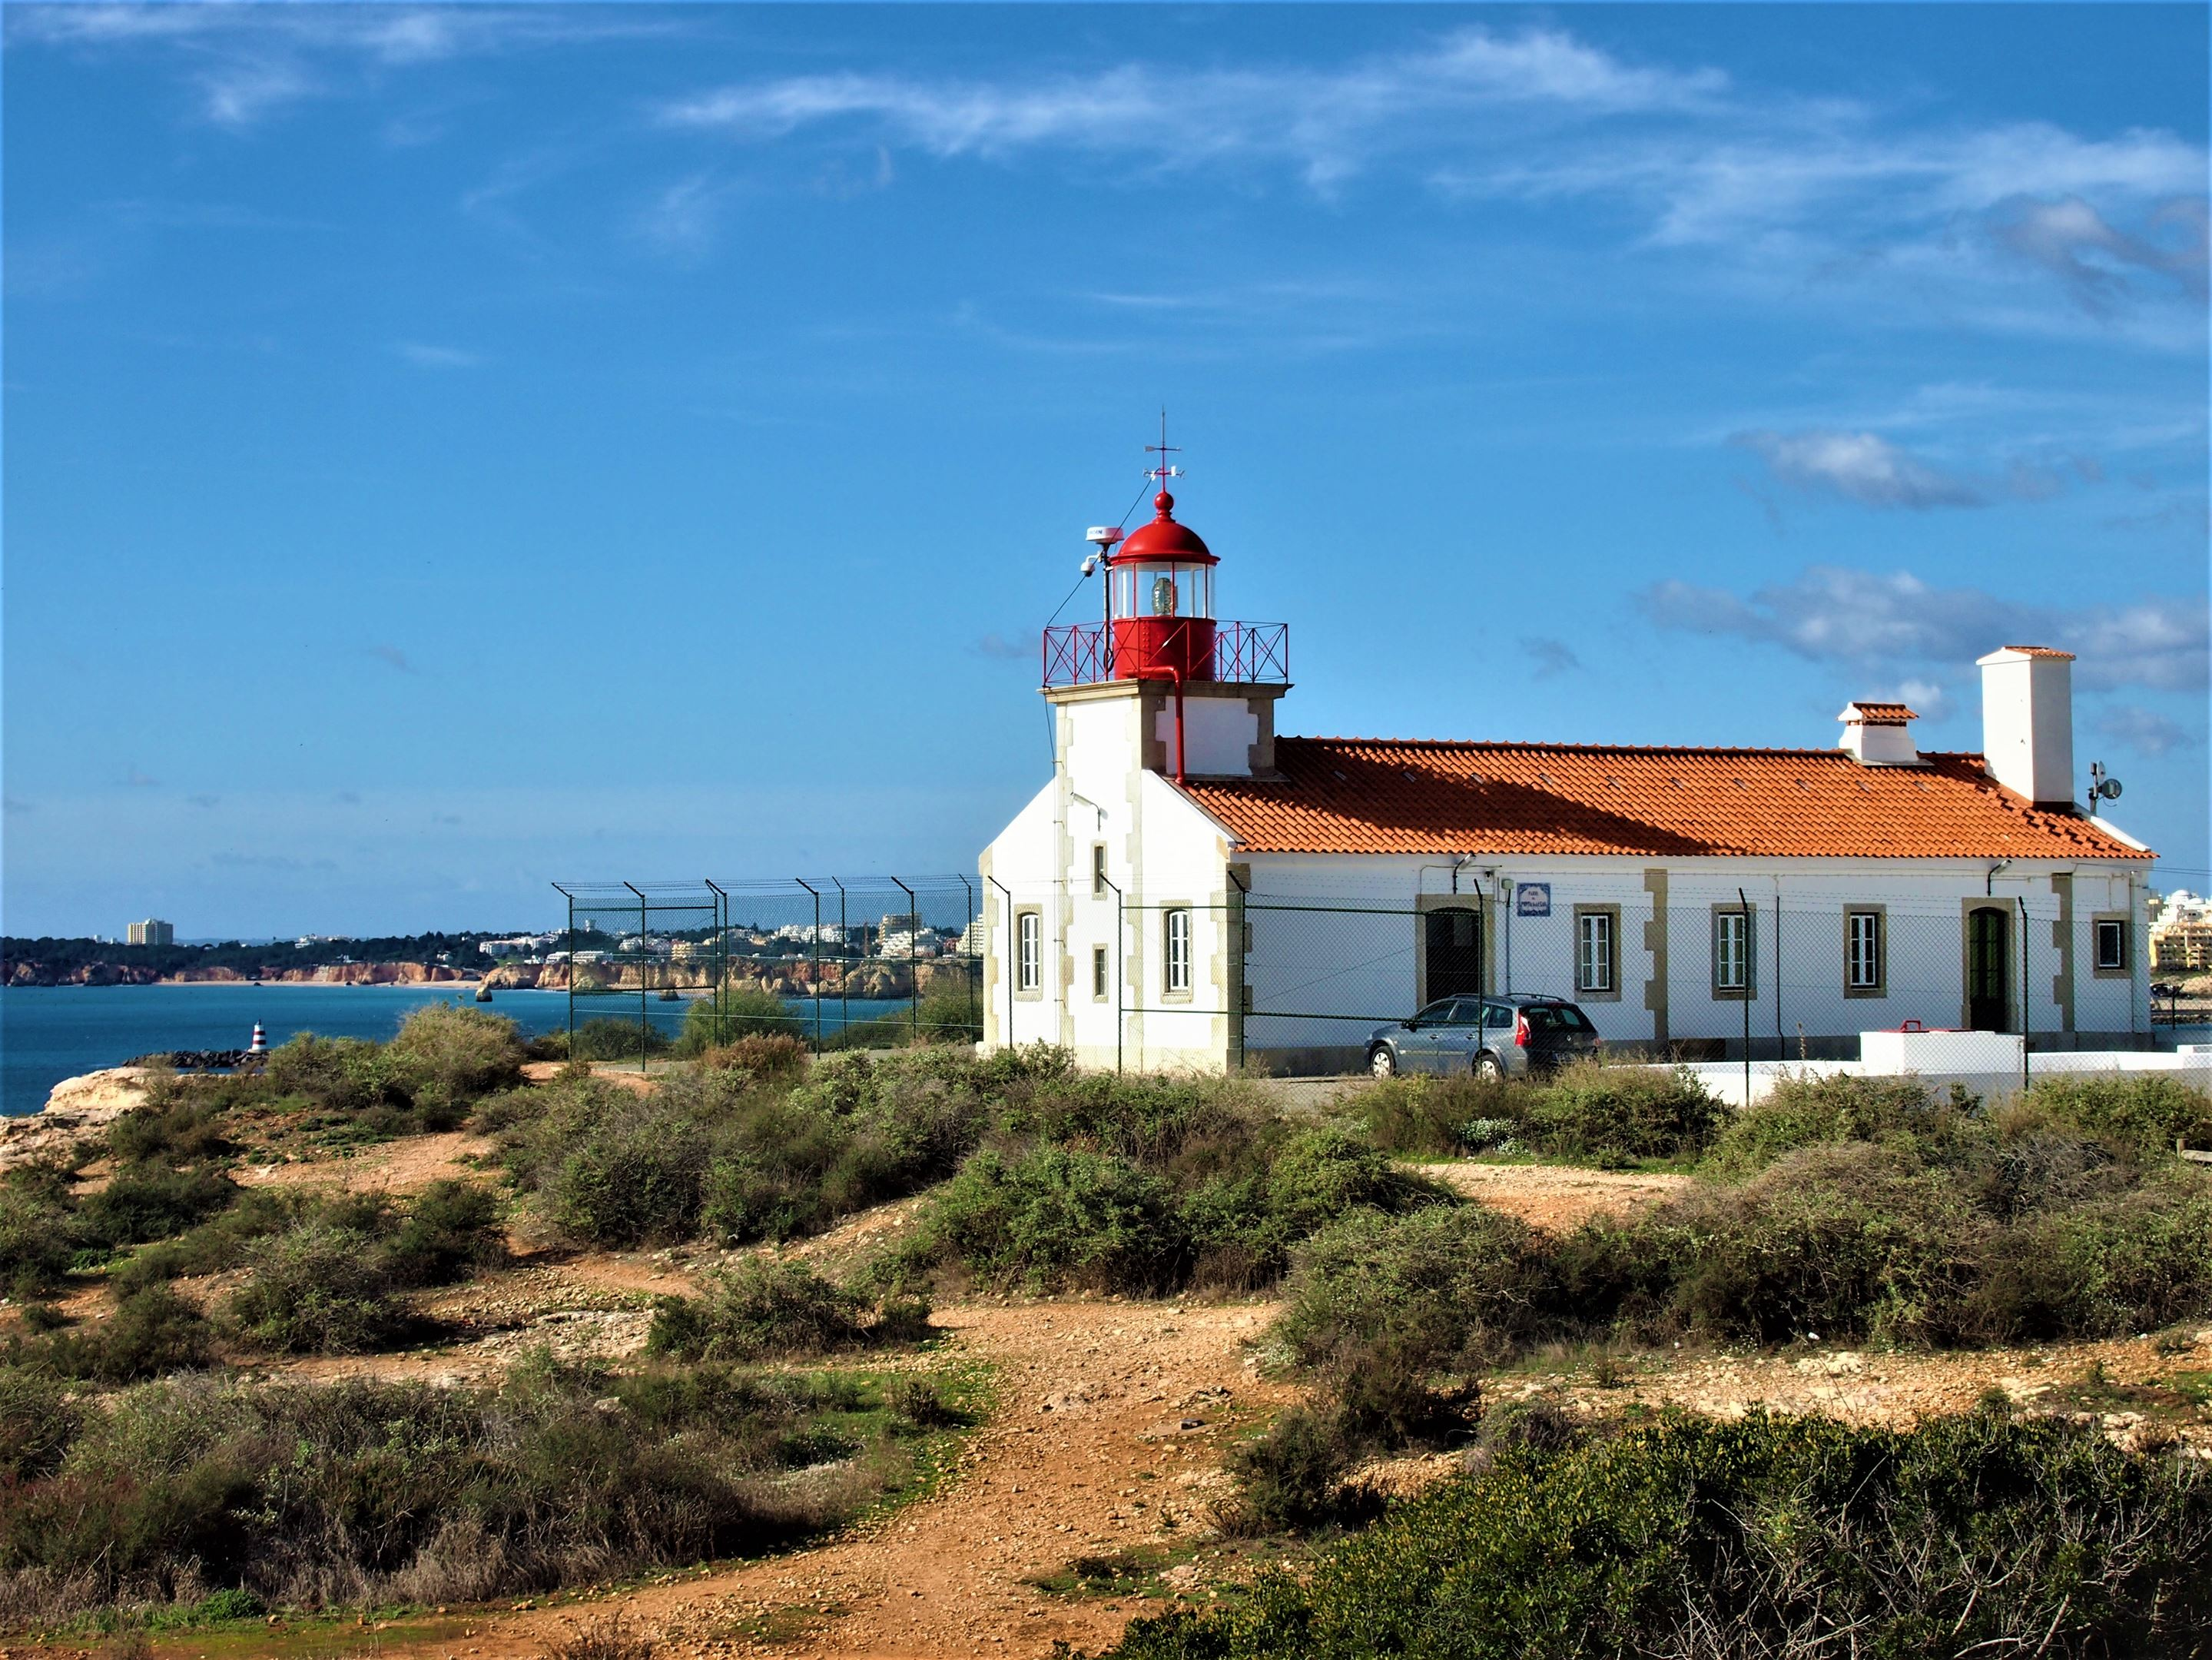 Ponta do Altar lighthouse at Portimao, located just before the entrance to the Arade River